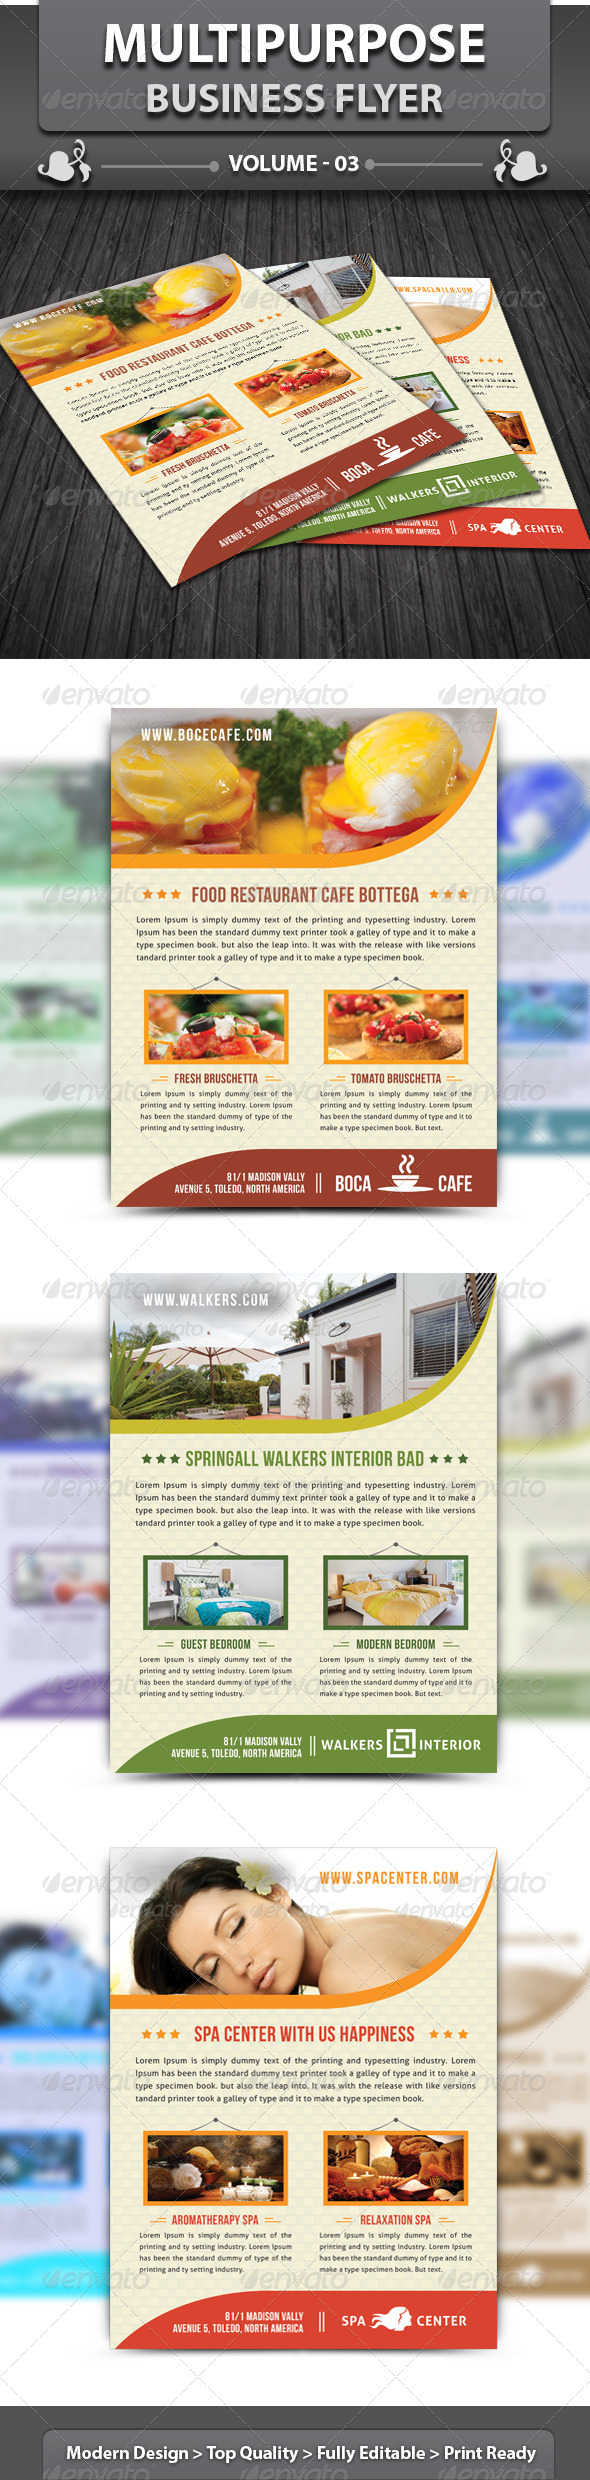 Multipurpose Business Flyer | Volume 3 - Corporate Flyers